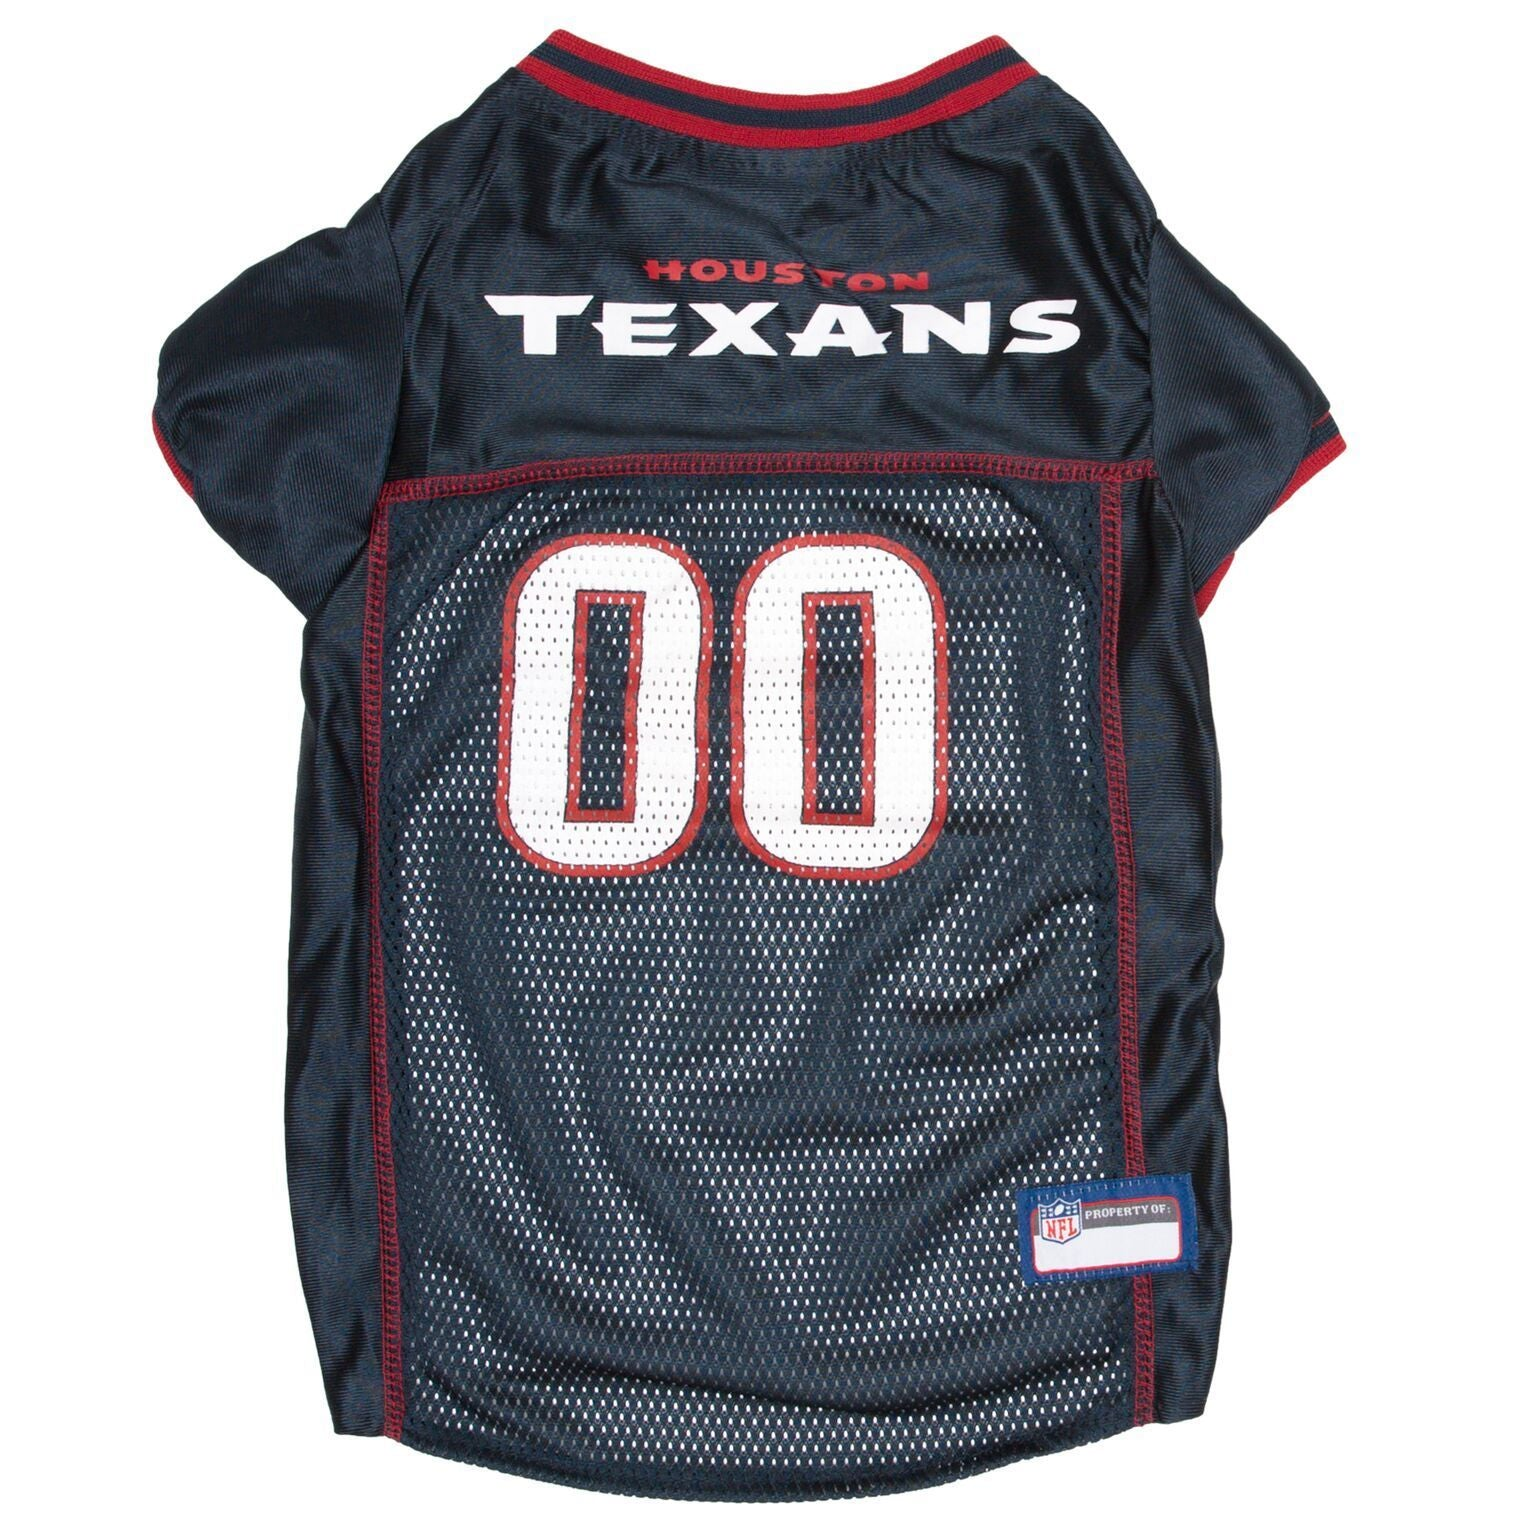 Houston Texans Football Jersey Cheerleading Uniform Collar Leash